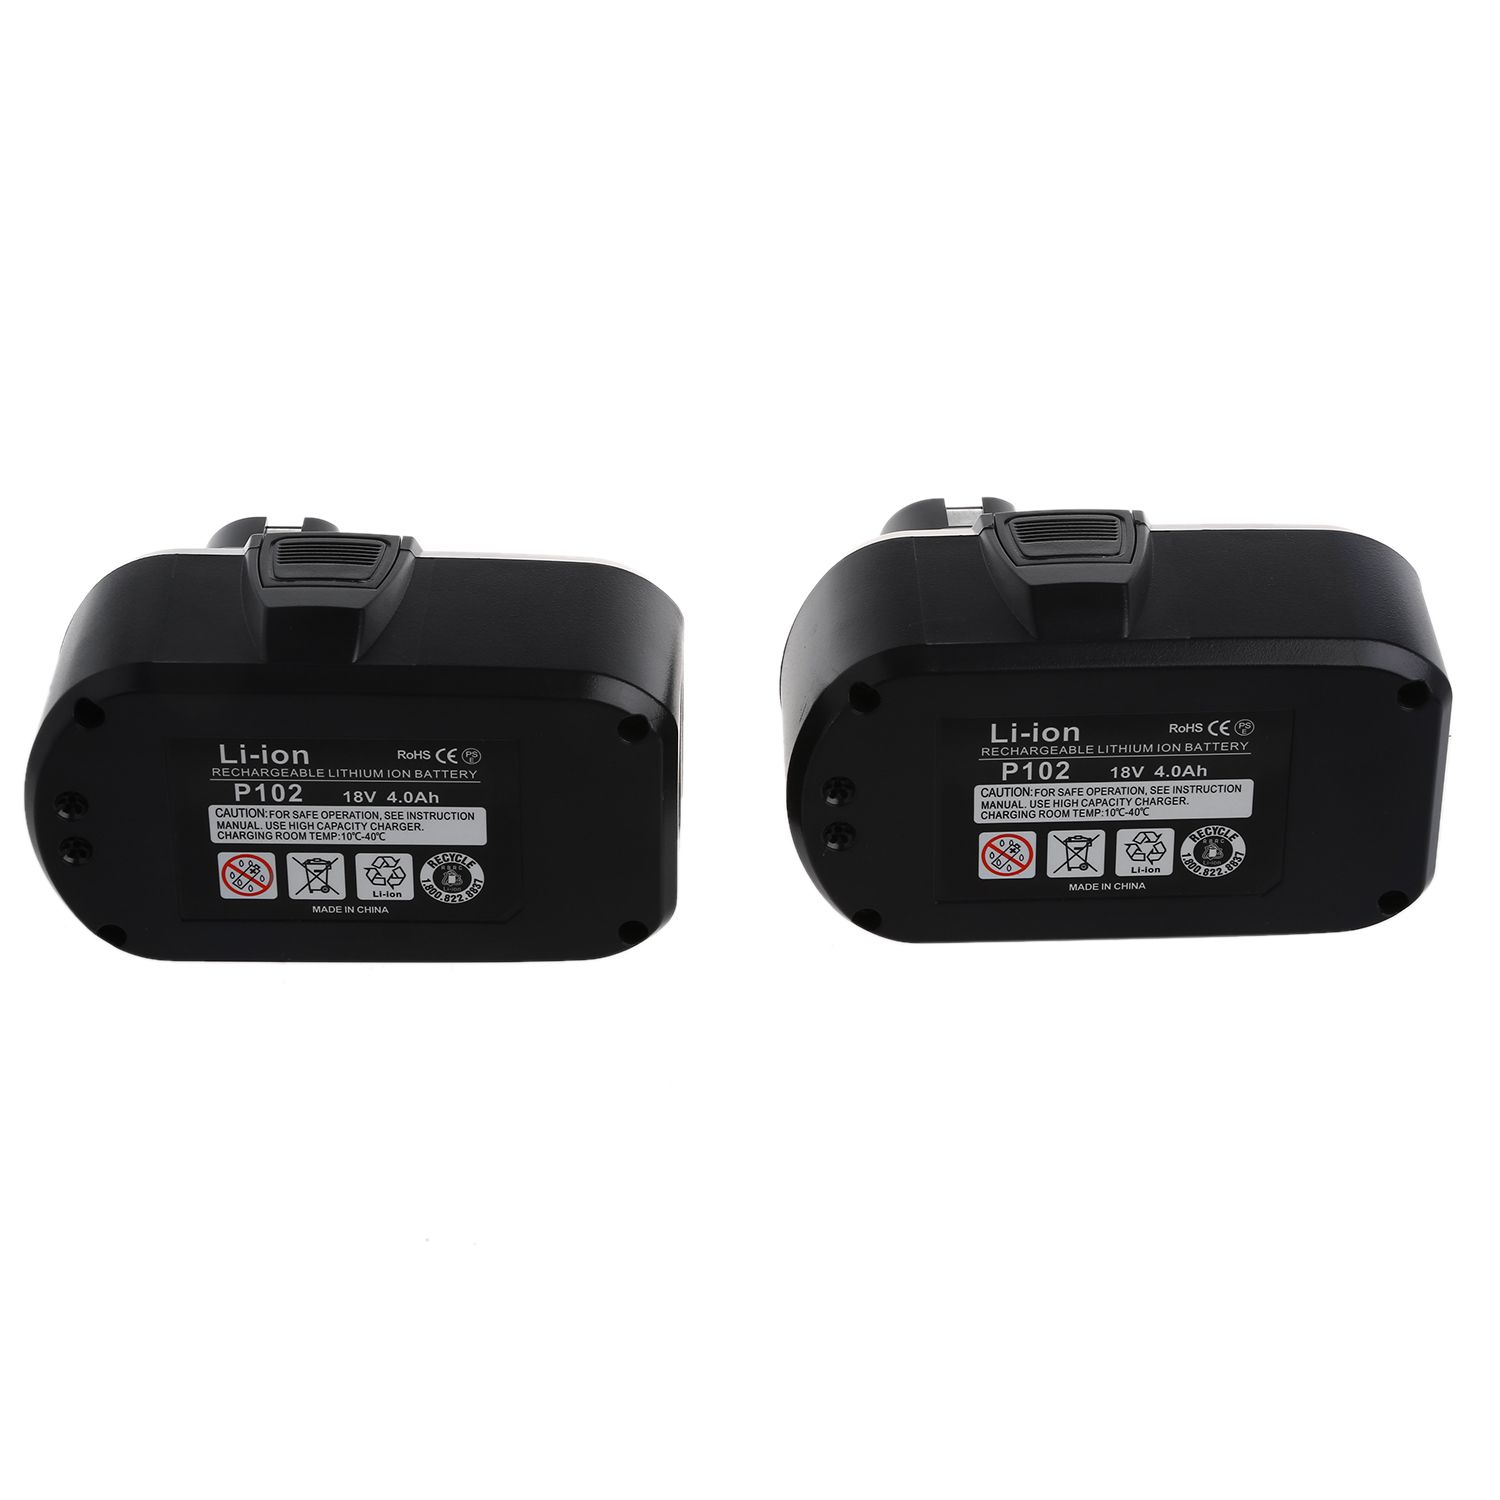 2x 18V 4.0AH Li-ion Battery for RYOBI One Plus RB18L25 RB18L50 P108 P107 P104 велосипед cube stereo 140 super hpc race 29 2014